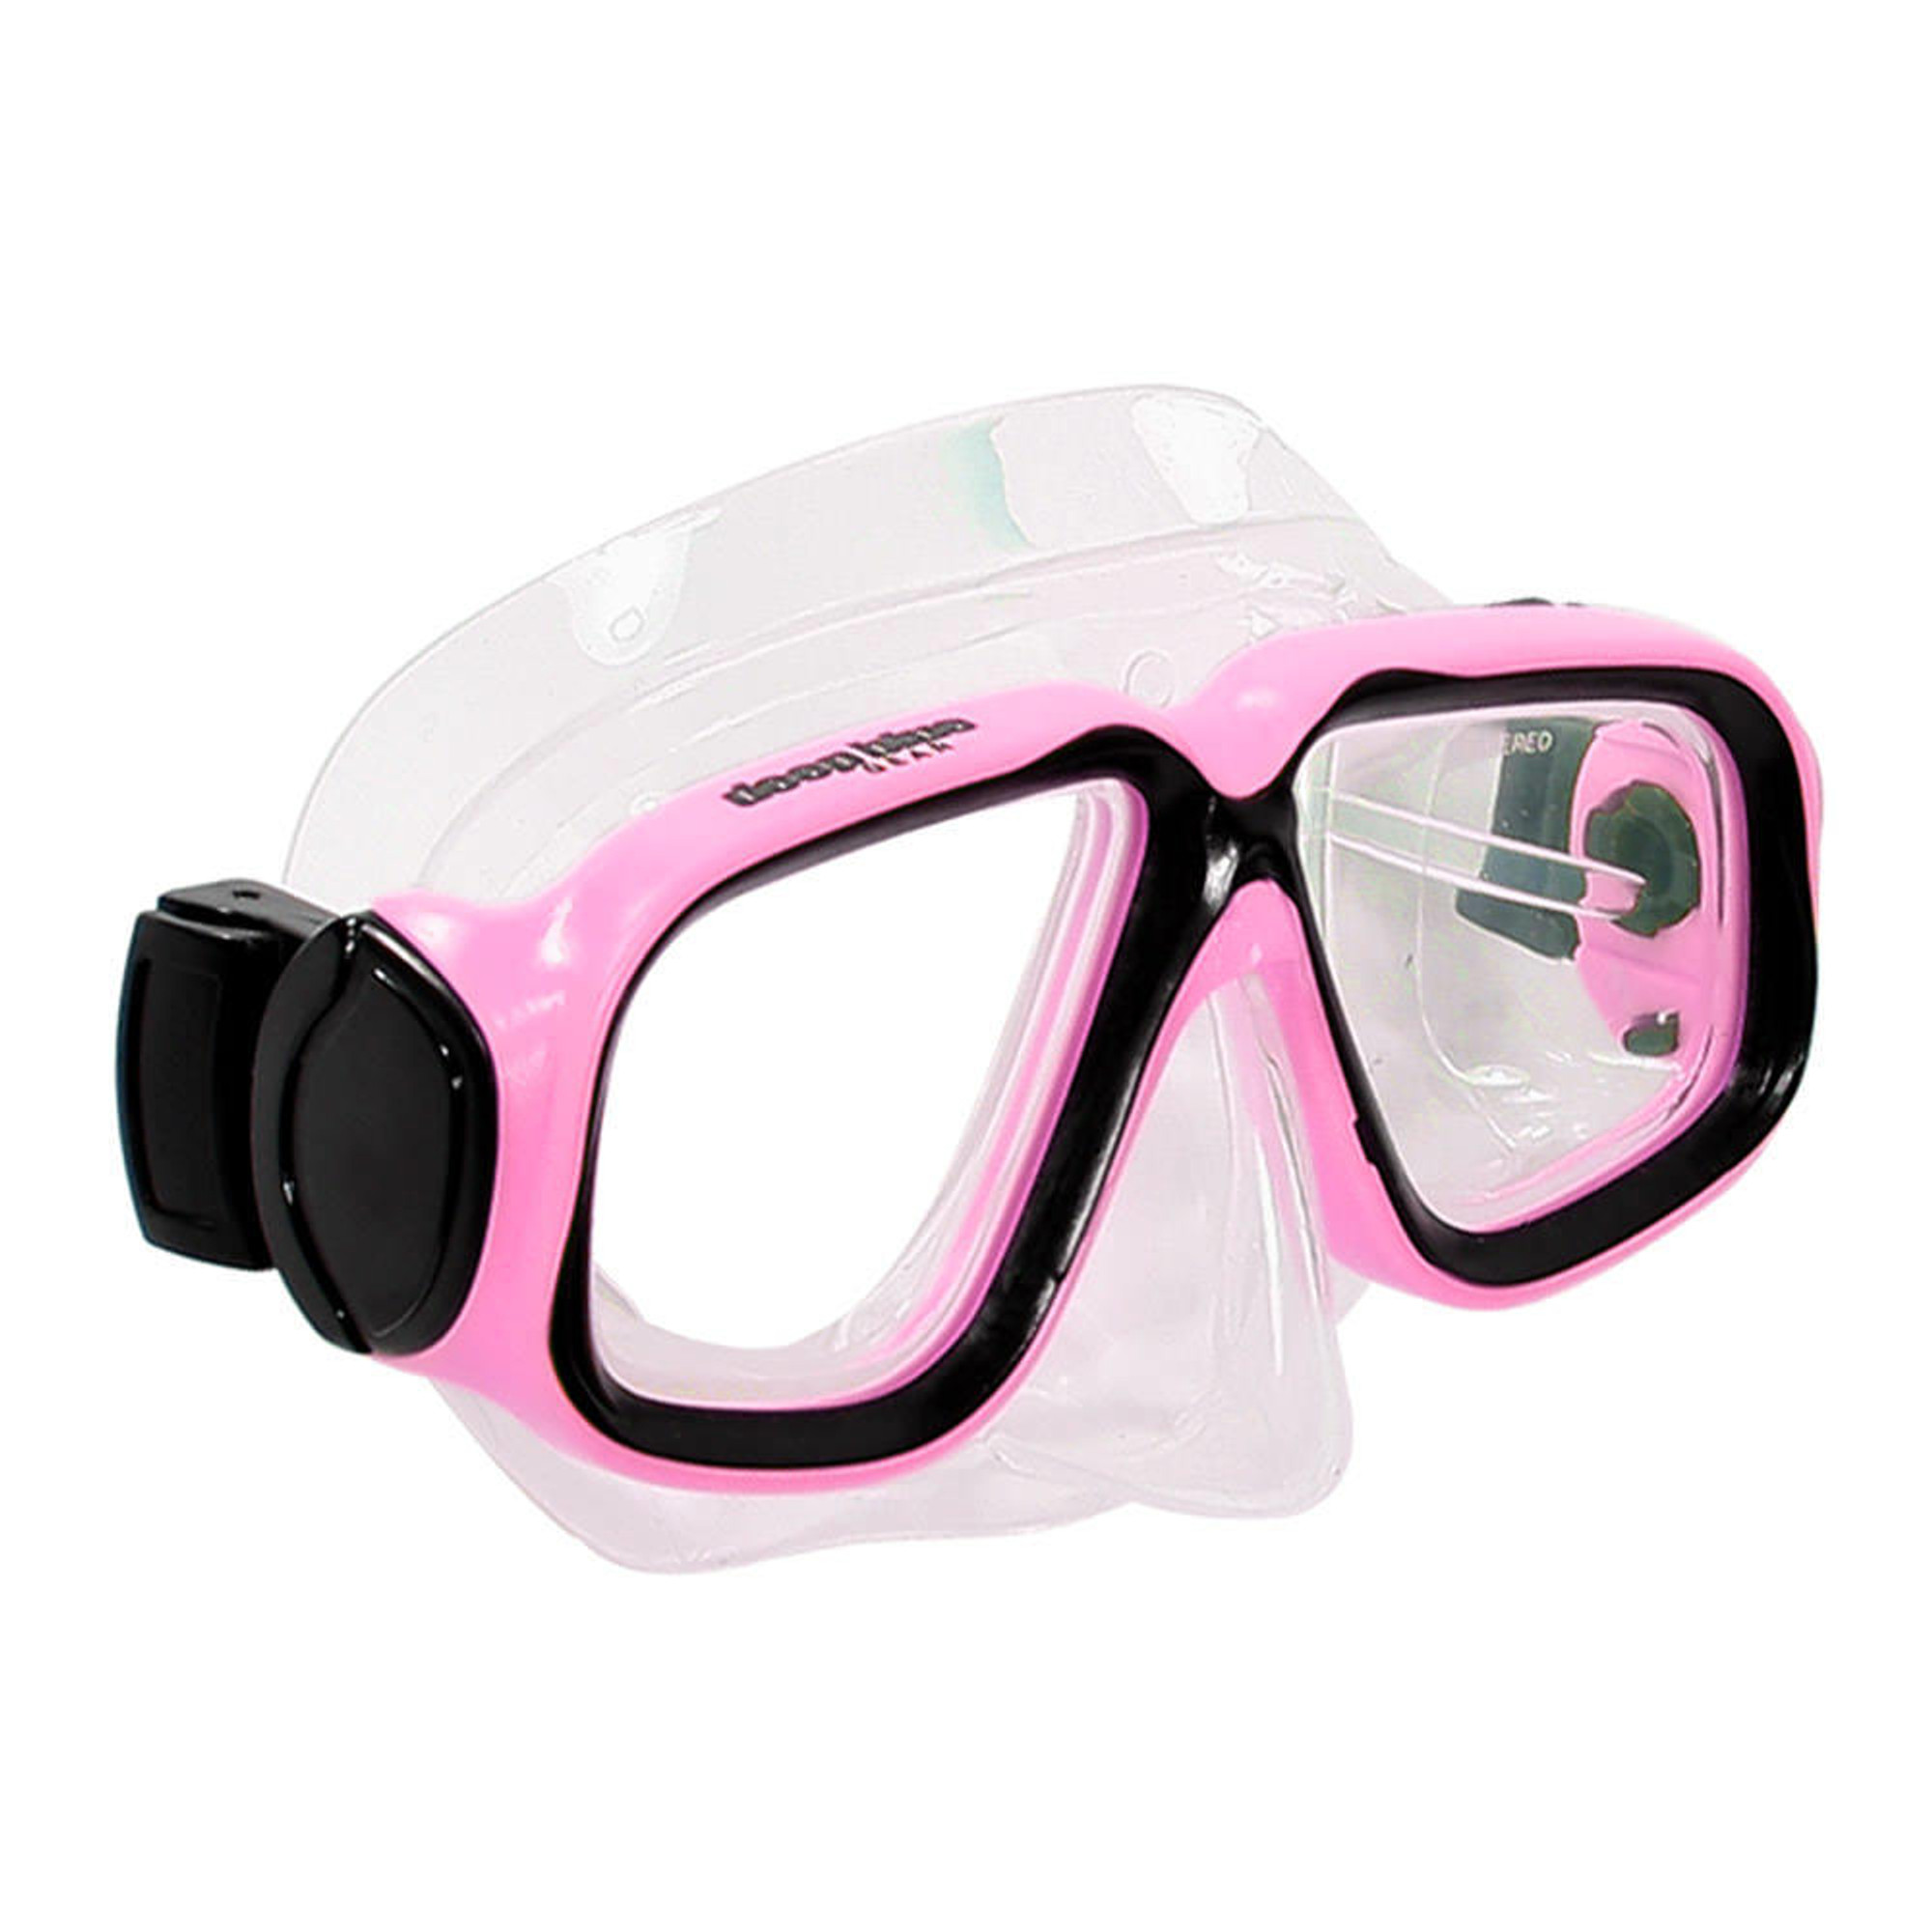 Maui Junior - Kid's Snorkeling Set